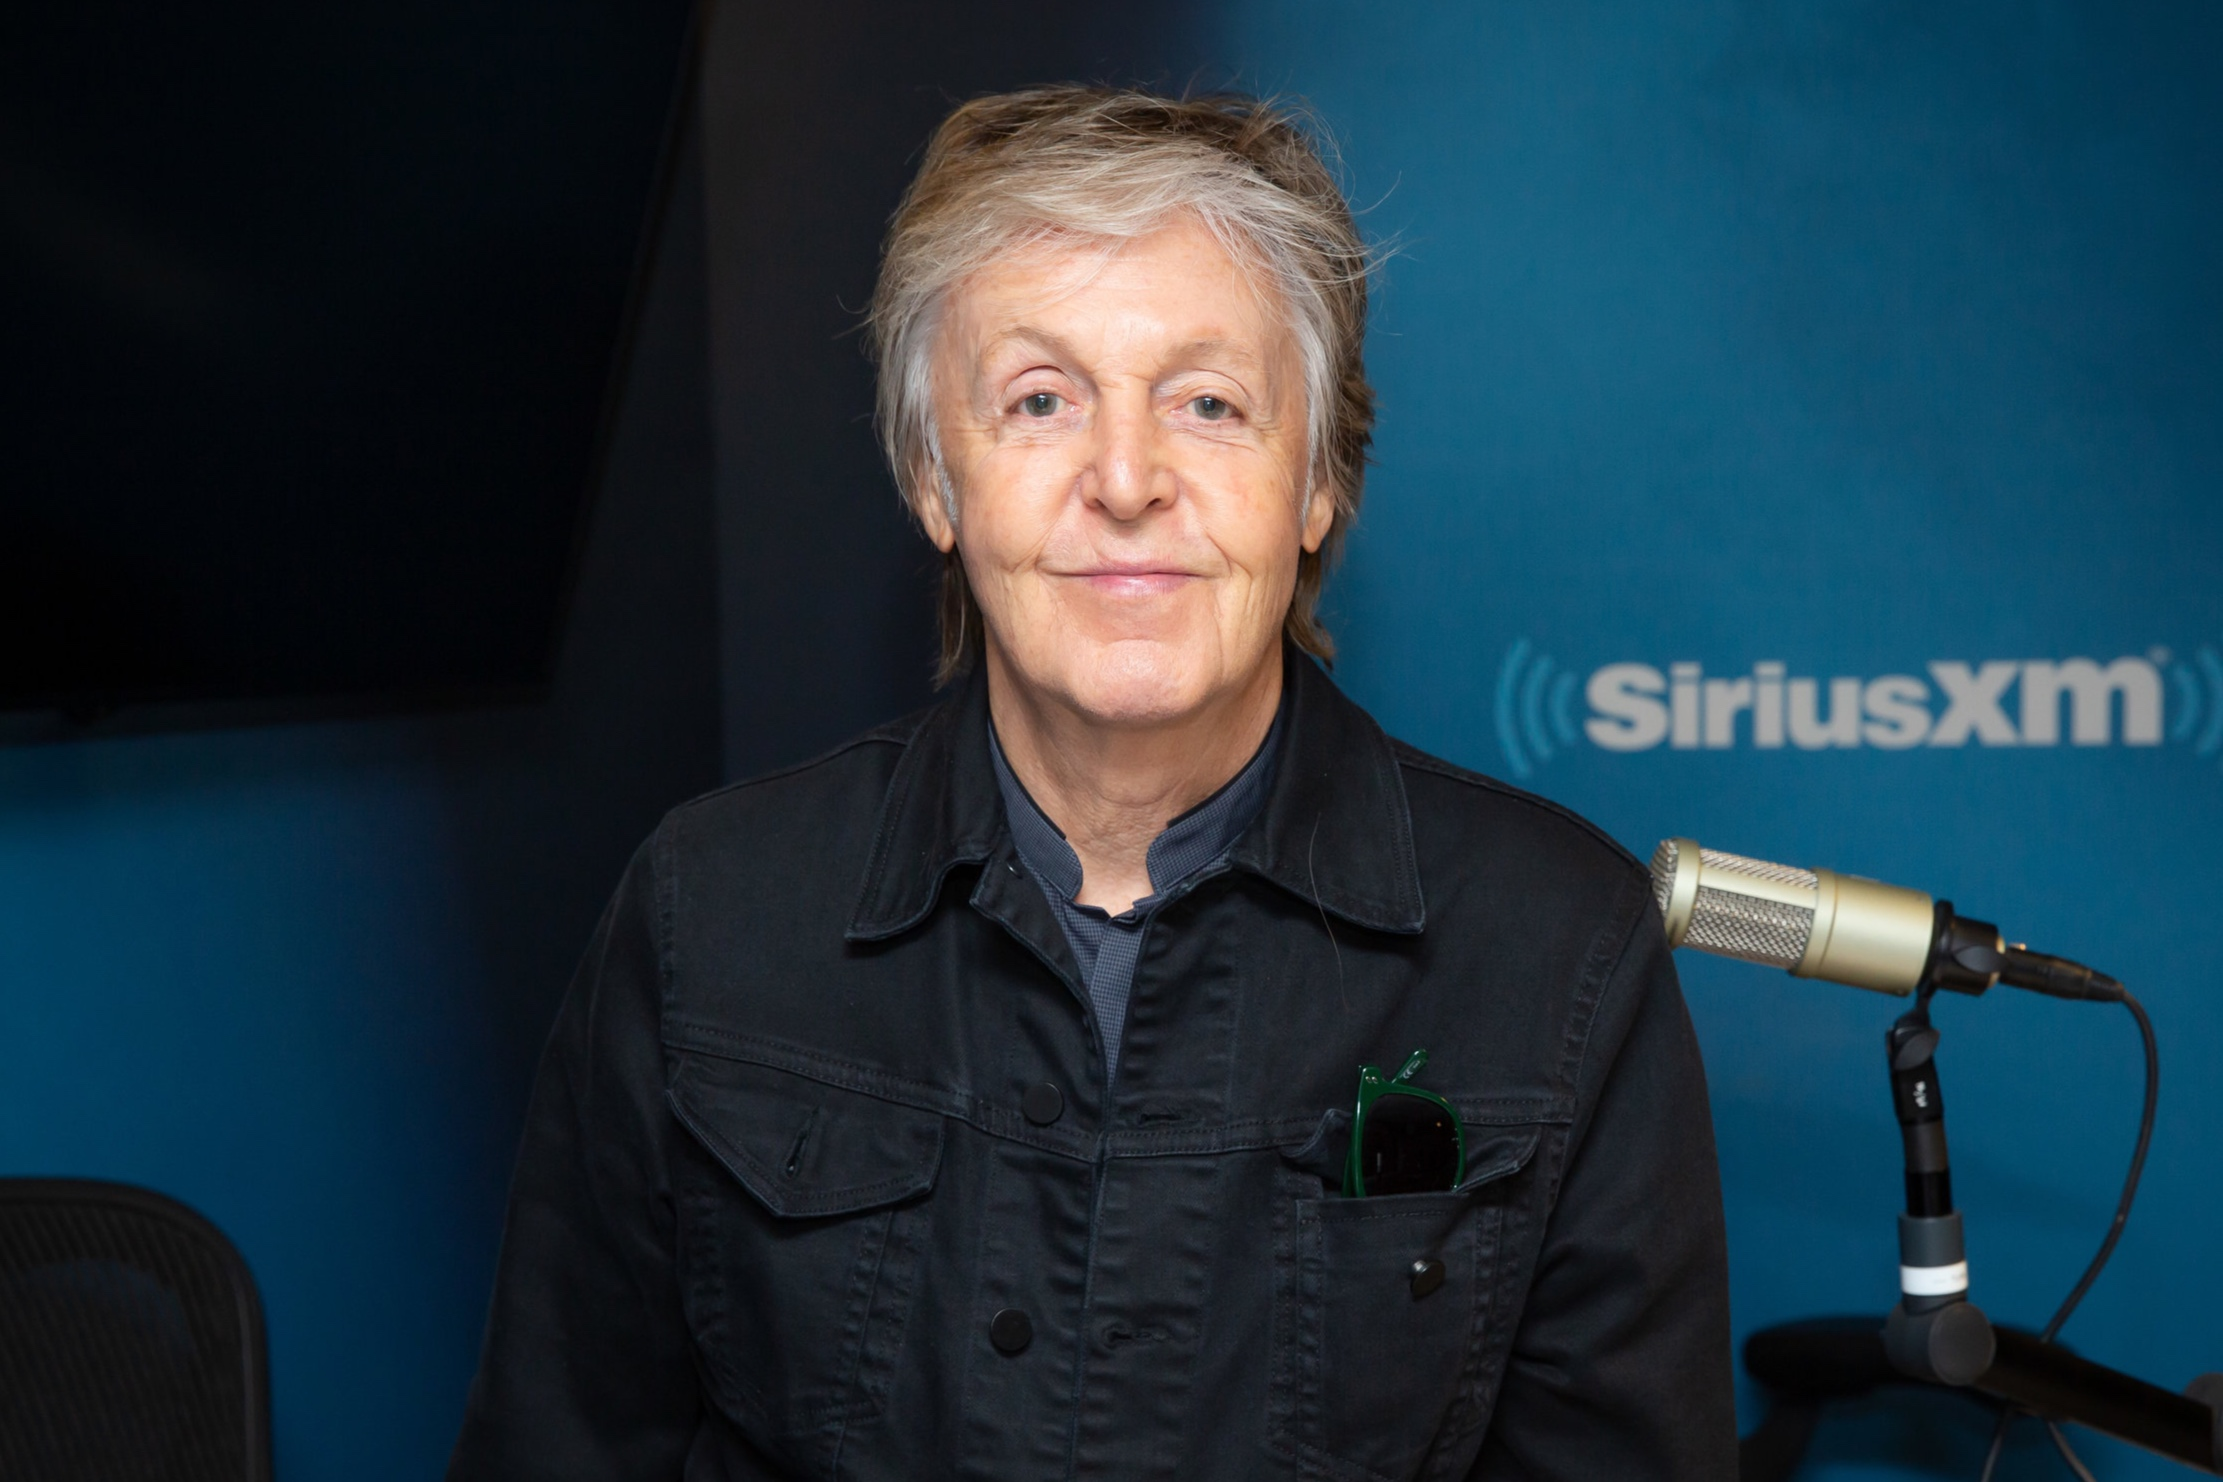 siriusxm_shaltz_paul mccartney-1004.jpg